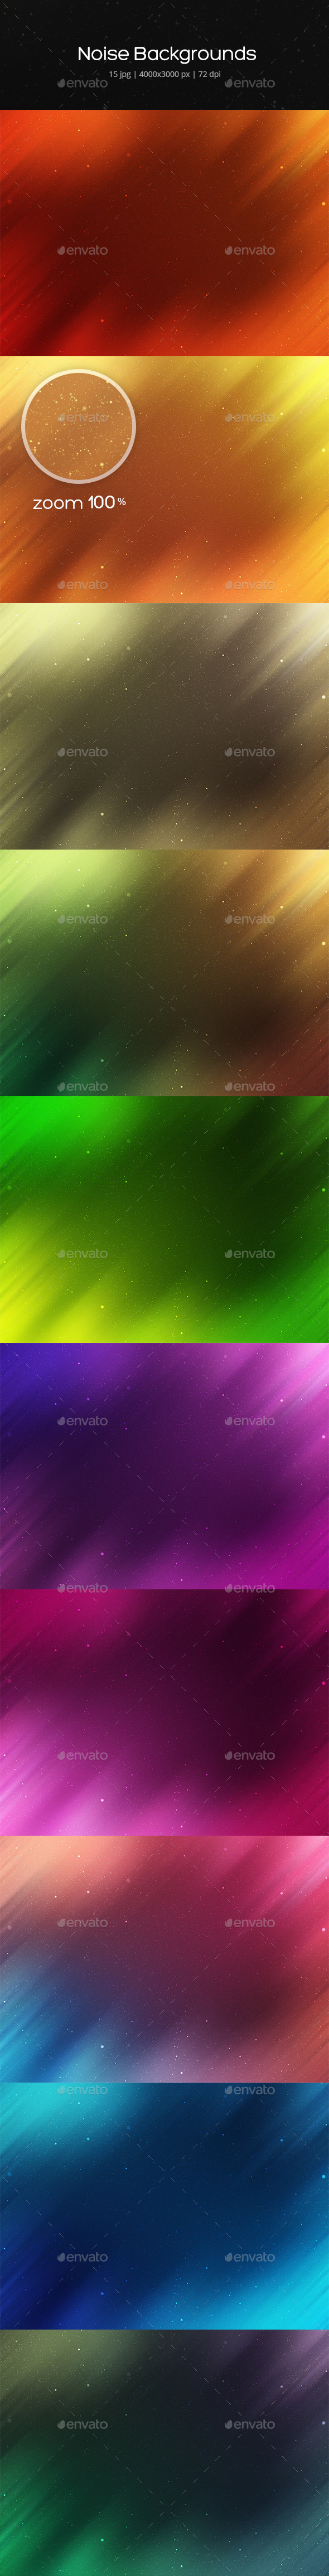 Noise Backgrounds - Backgrounds Graphics